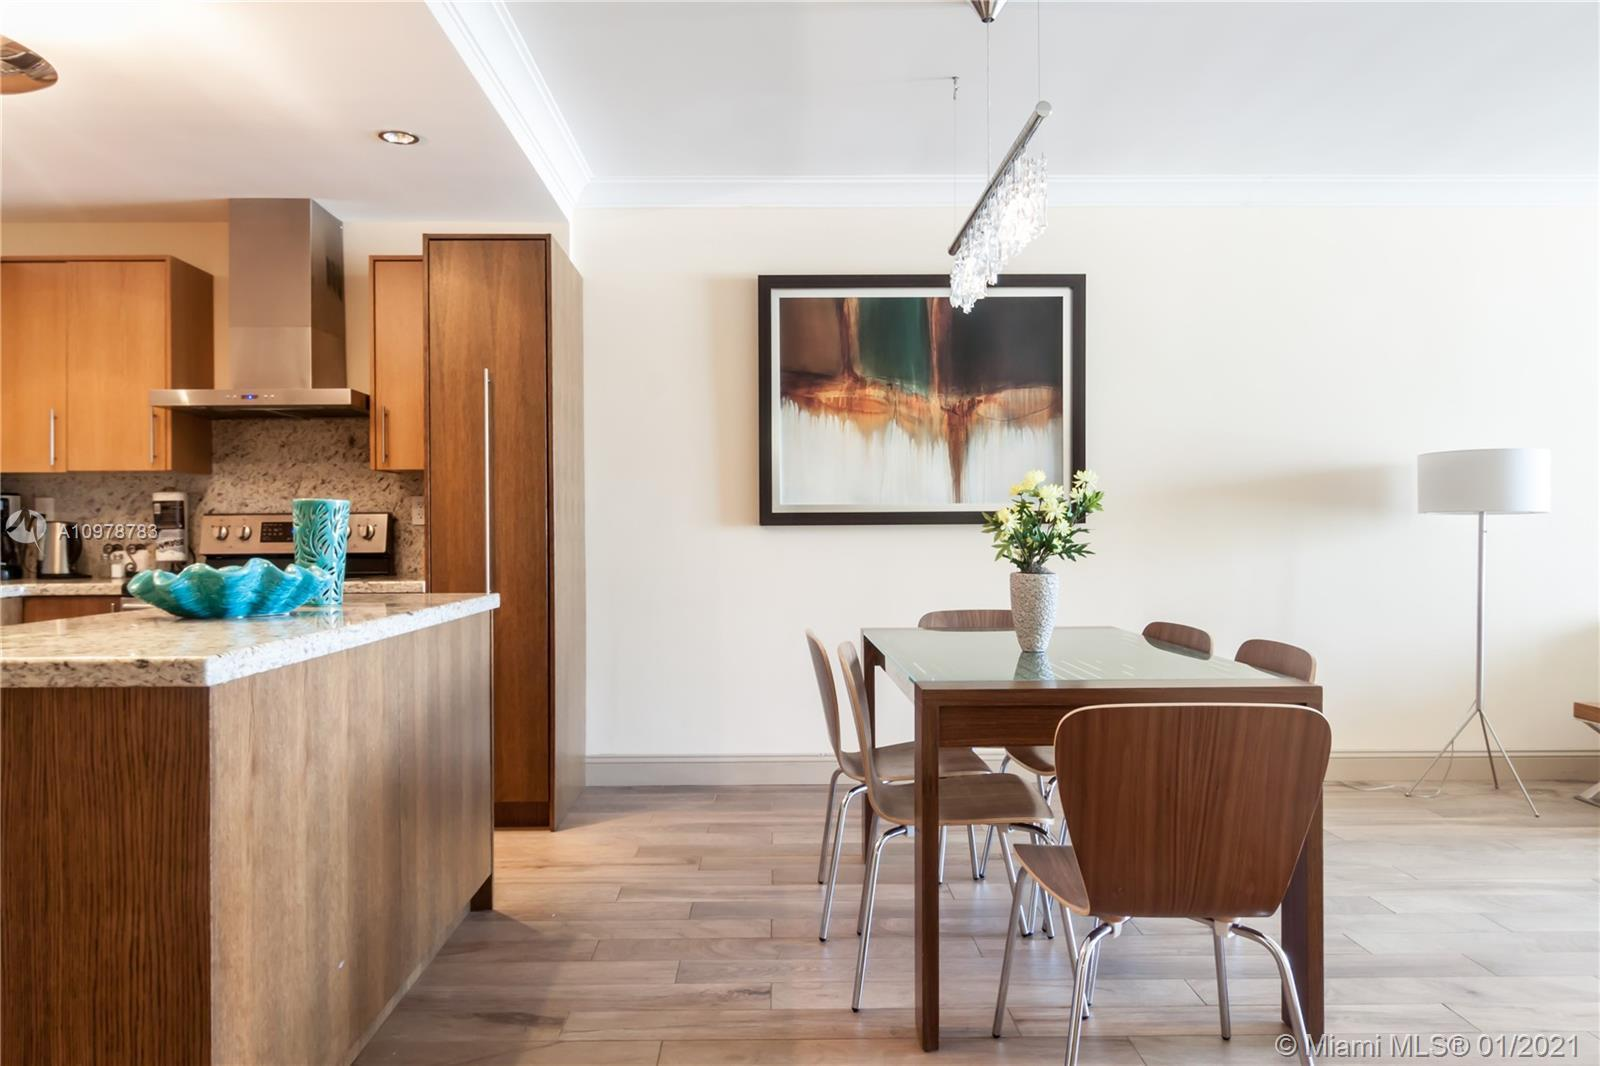 Beautifully renovated 2 Bedroom plus Den apartment with a modern and welcoming touch. The building h